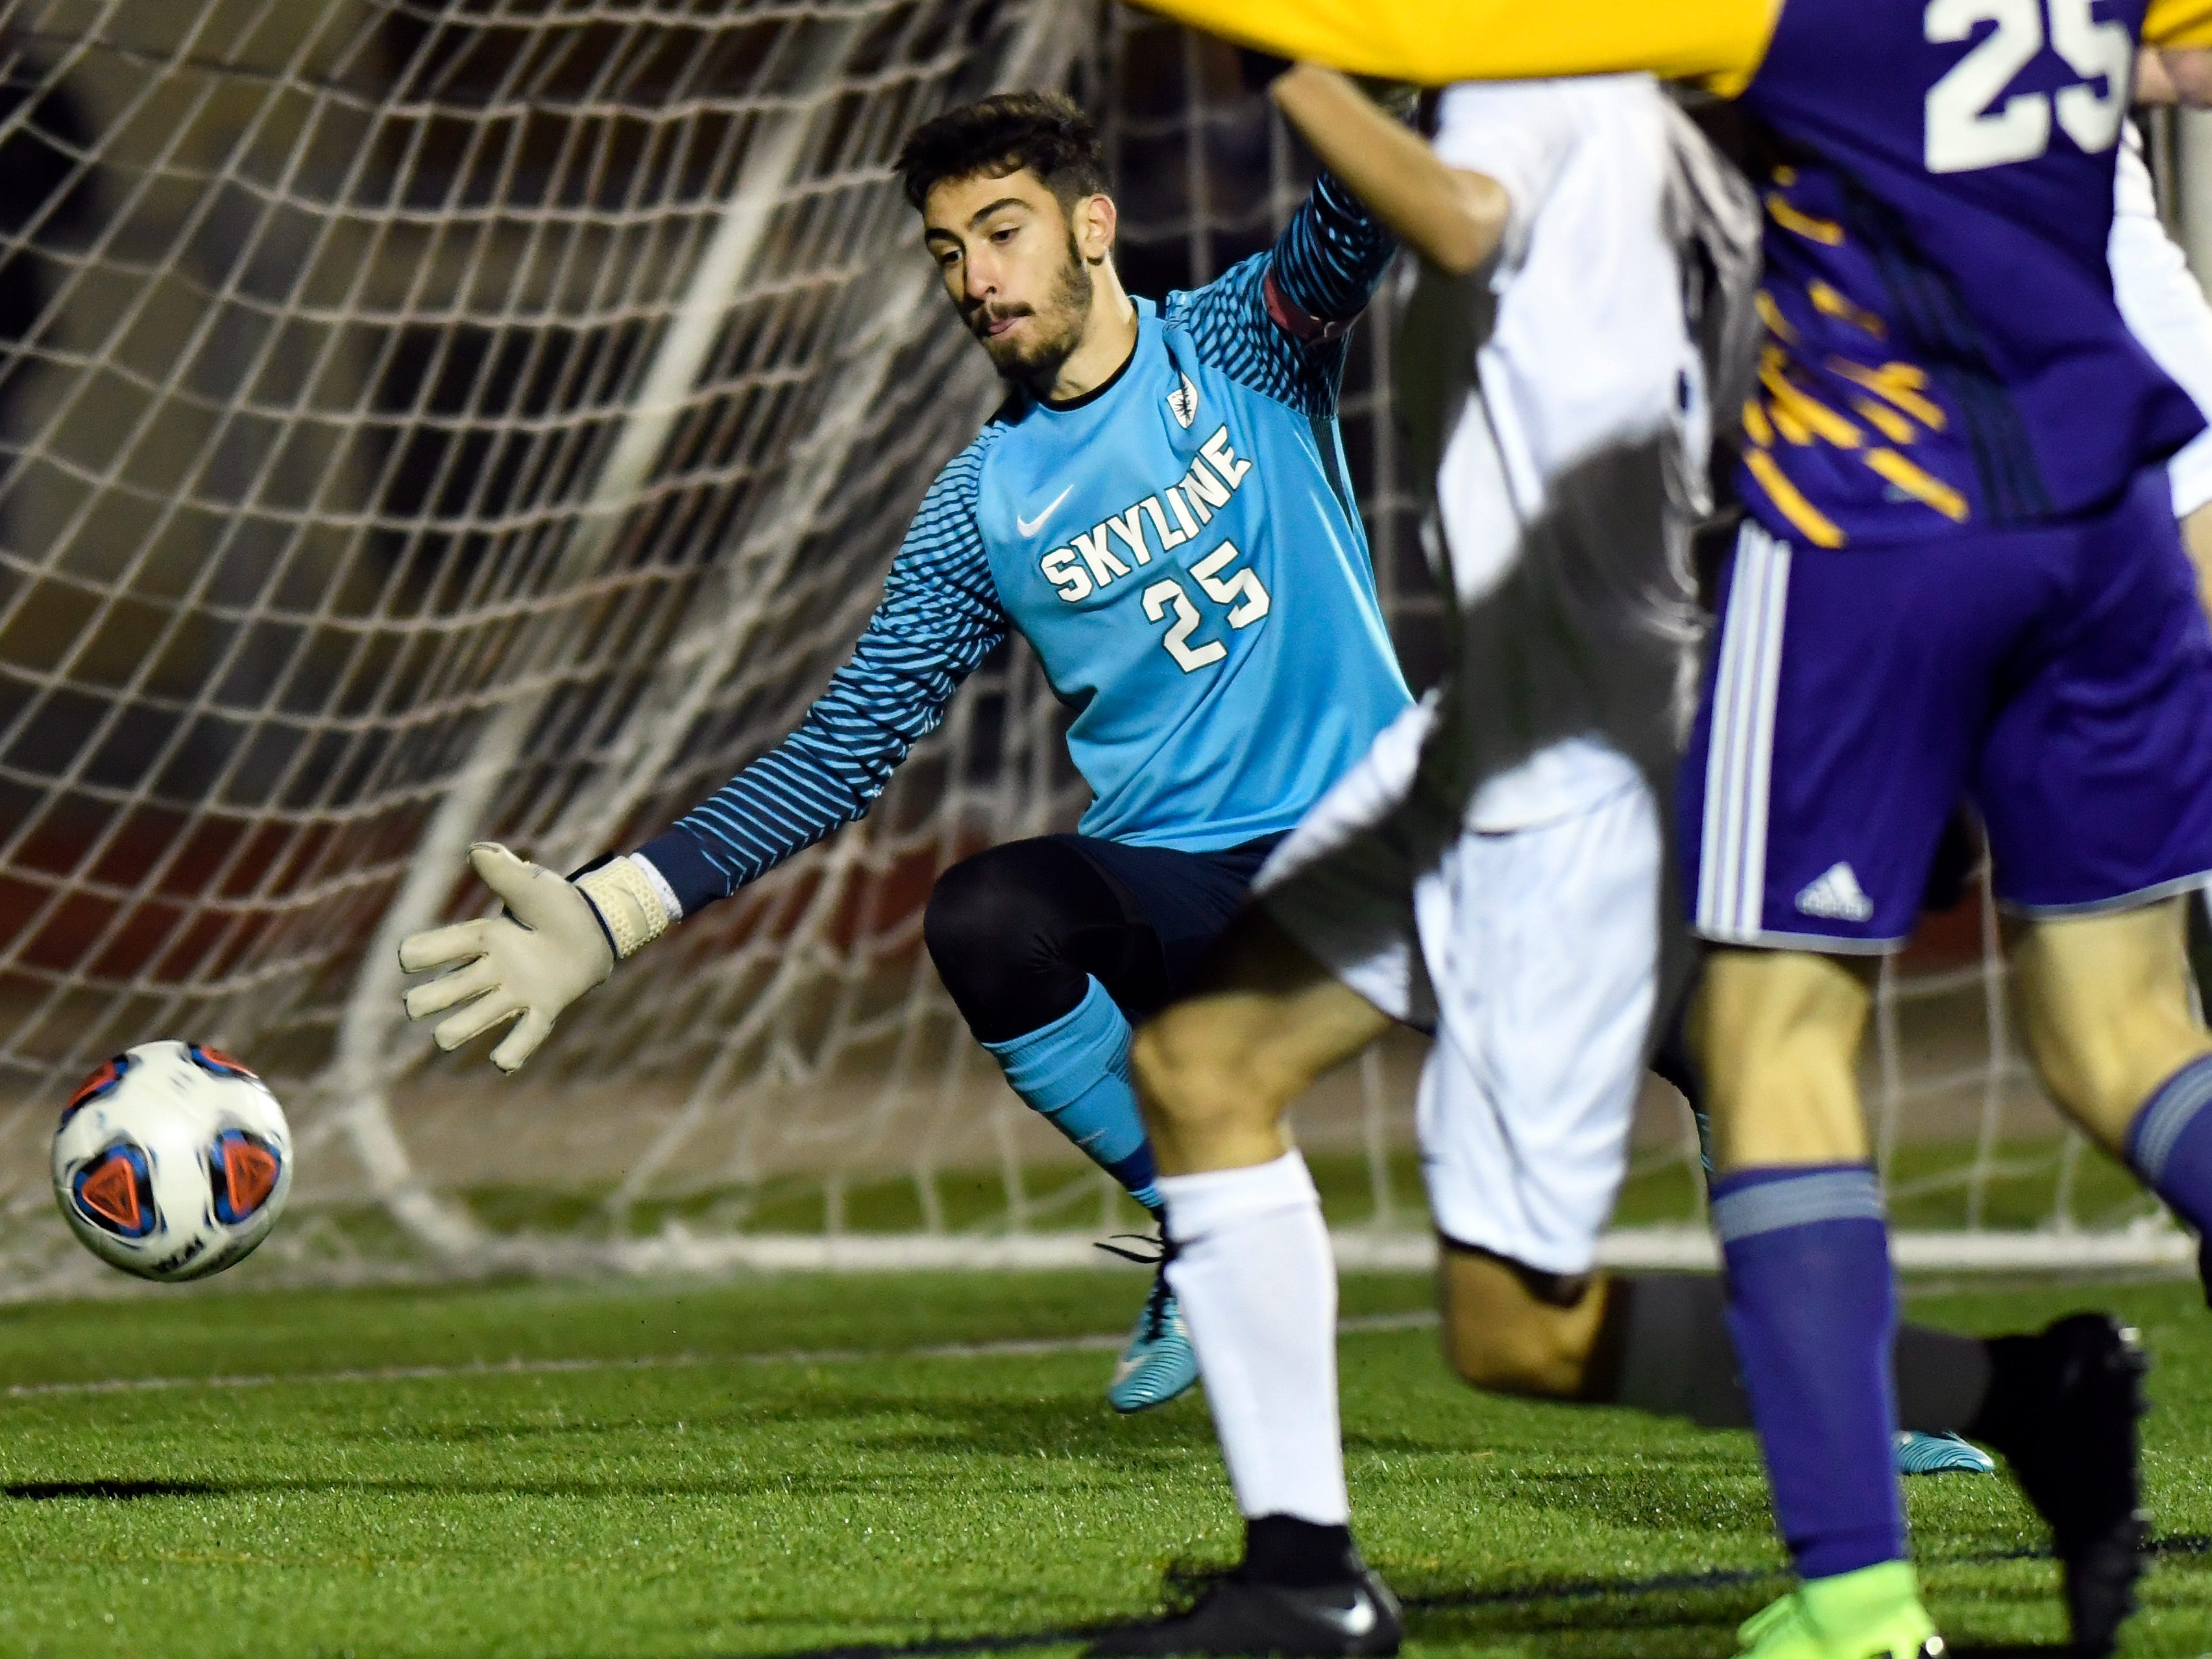 Ann Arbor Skyline goalkeeper Kyri Wixom (25), left, dives to save a shot that goes wide from a Warren De La Salle player in the first half.